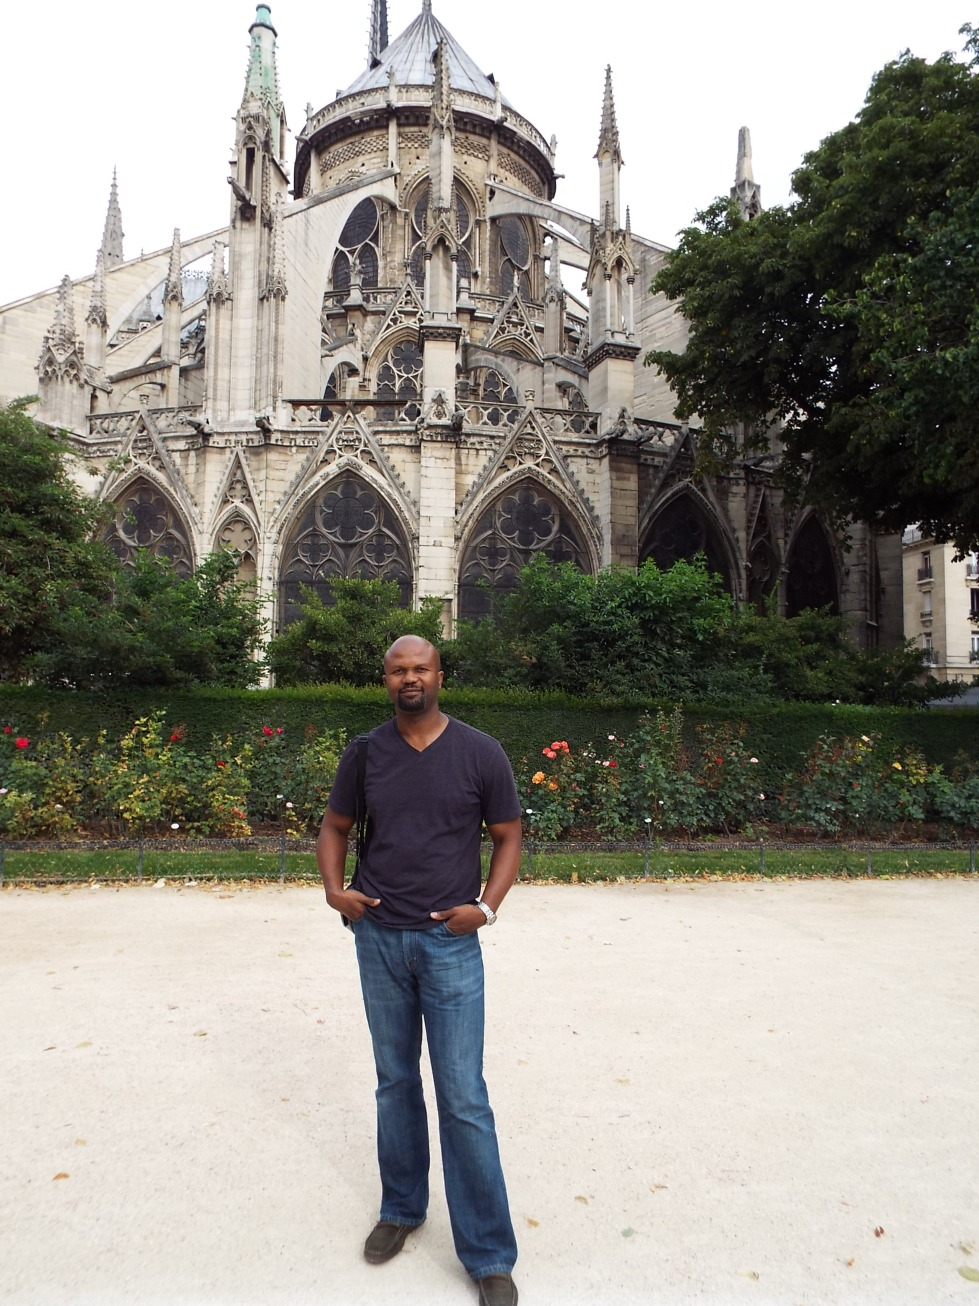 T at the back of the Notre Dame, his favorite of the many cathedrals we've visited on my worldwide cathedral tour.